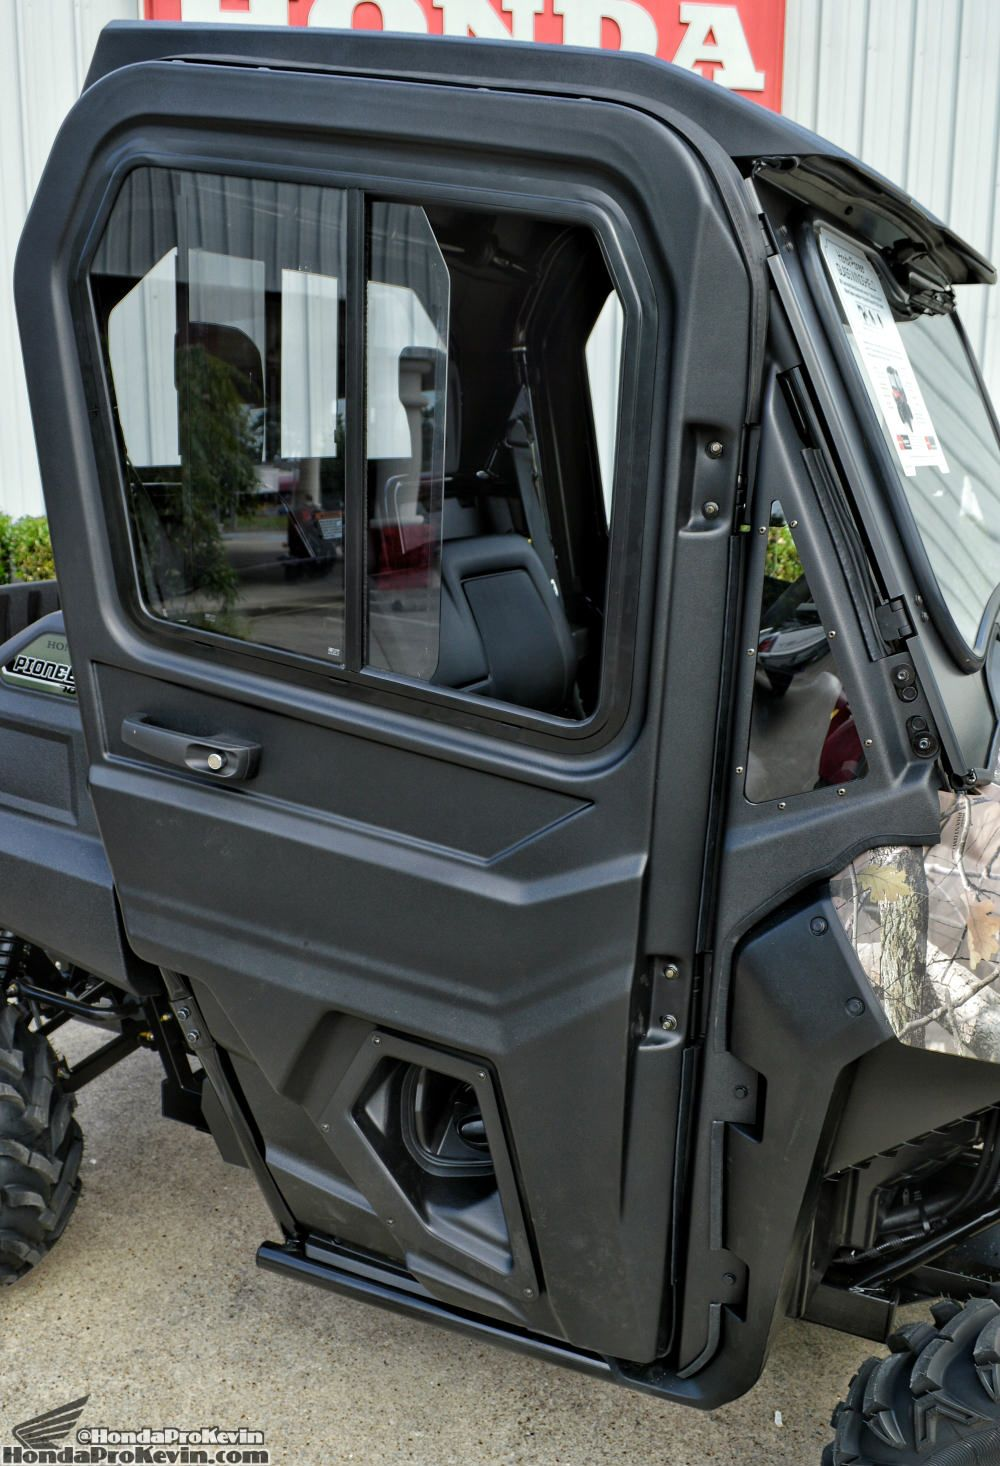 Bon 2016 Honda Pioneer 700 4 Hard Cab Doors Accessory Review + Discount OEM  Parts Prices